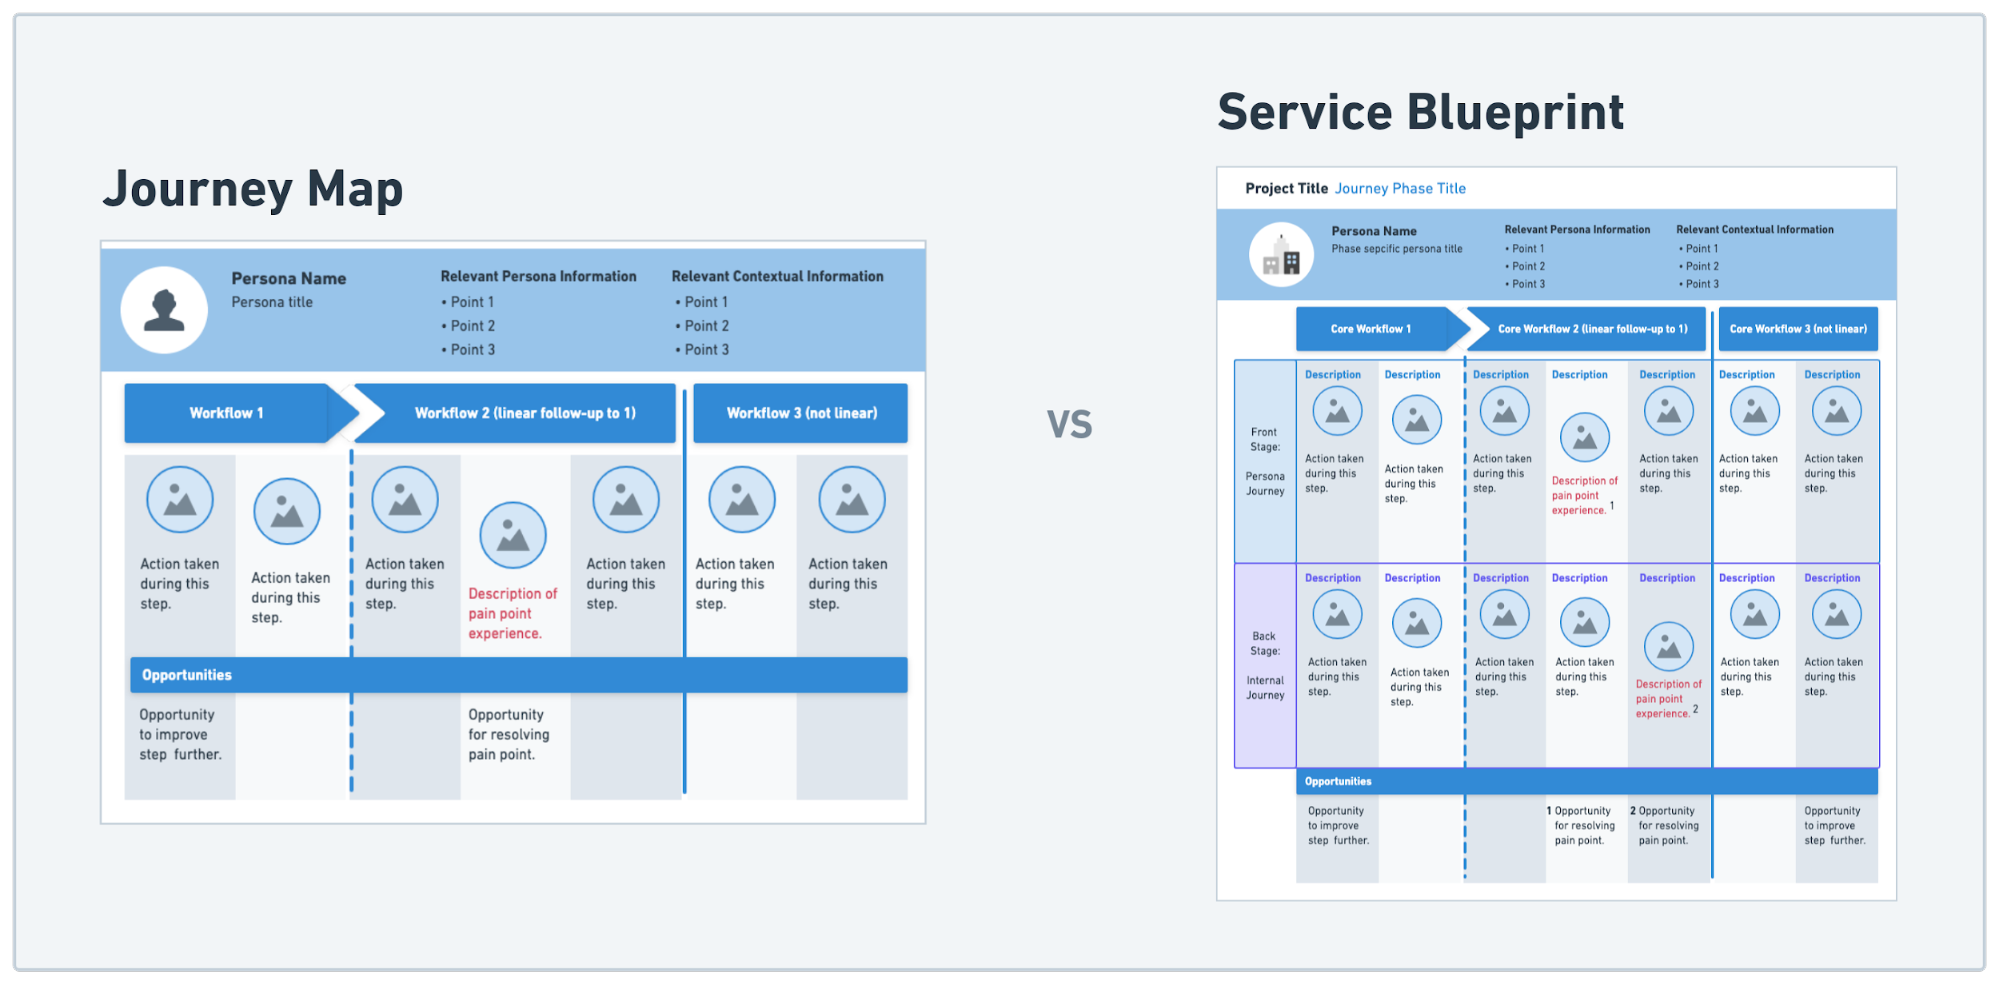 Journey Map and a Service Blueprint example